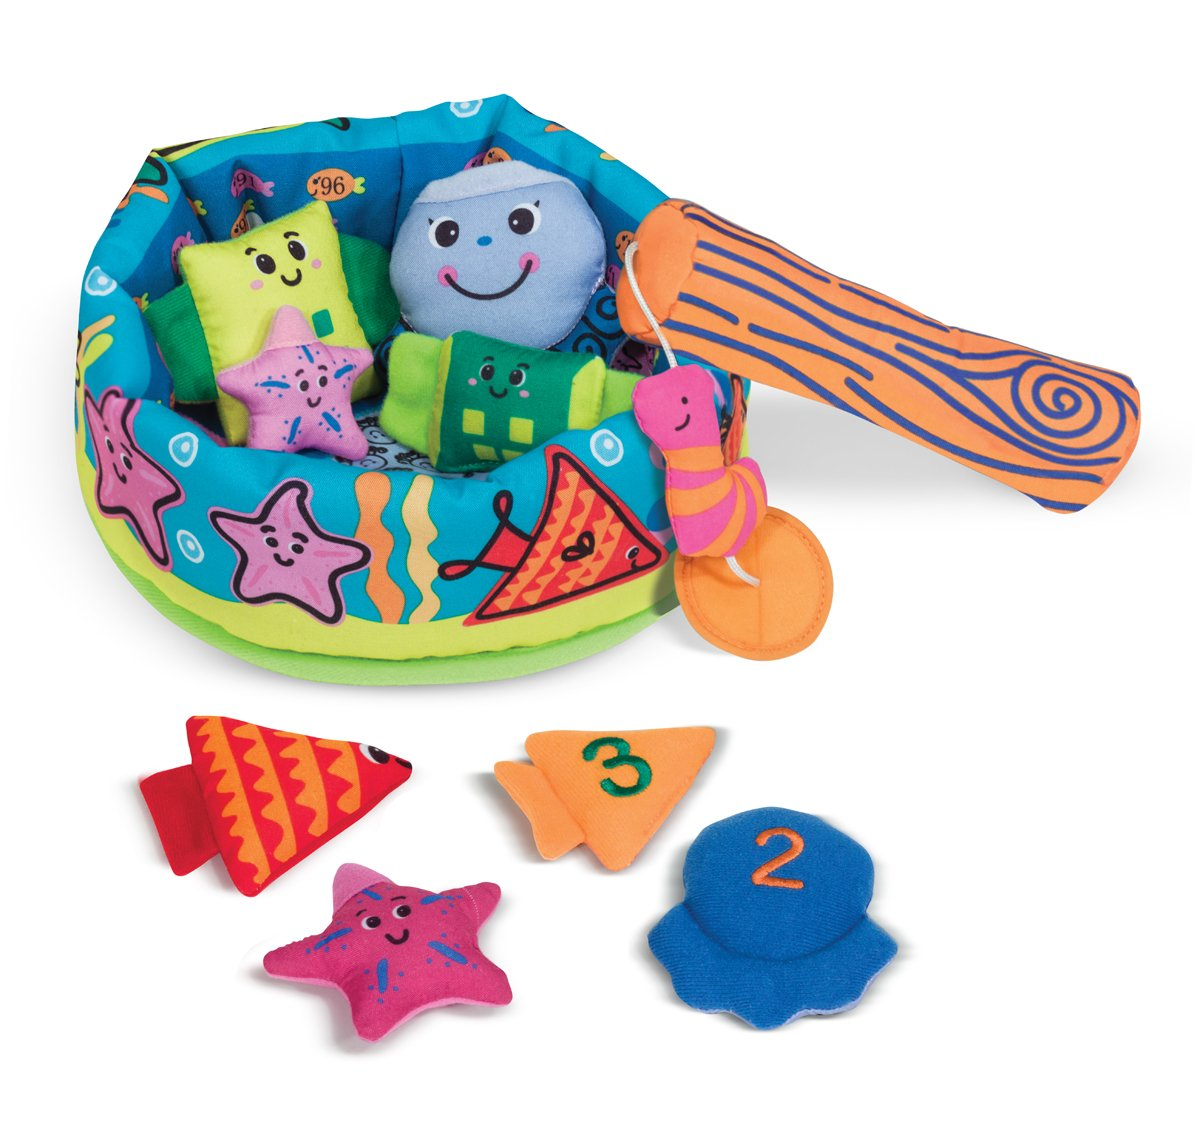 Melissa Doug K's Kids Fish and Count Learning Game With 8 Numbered Fish to Catch and Release